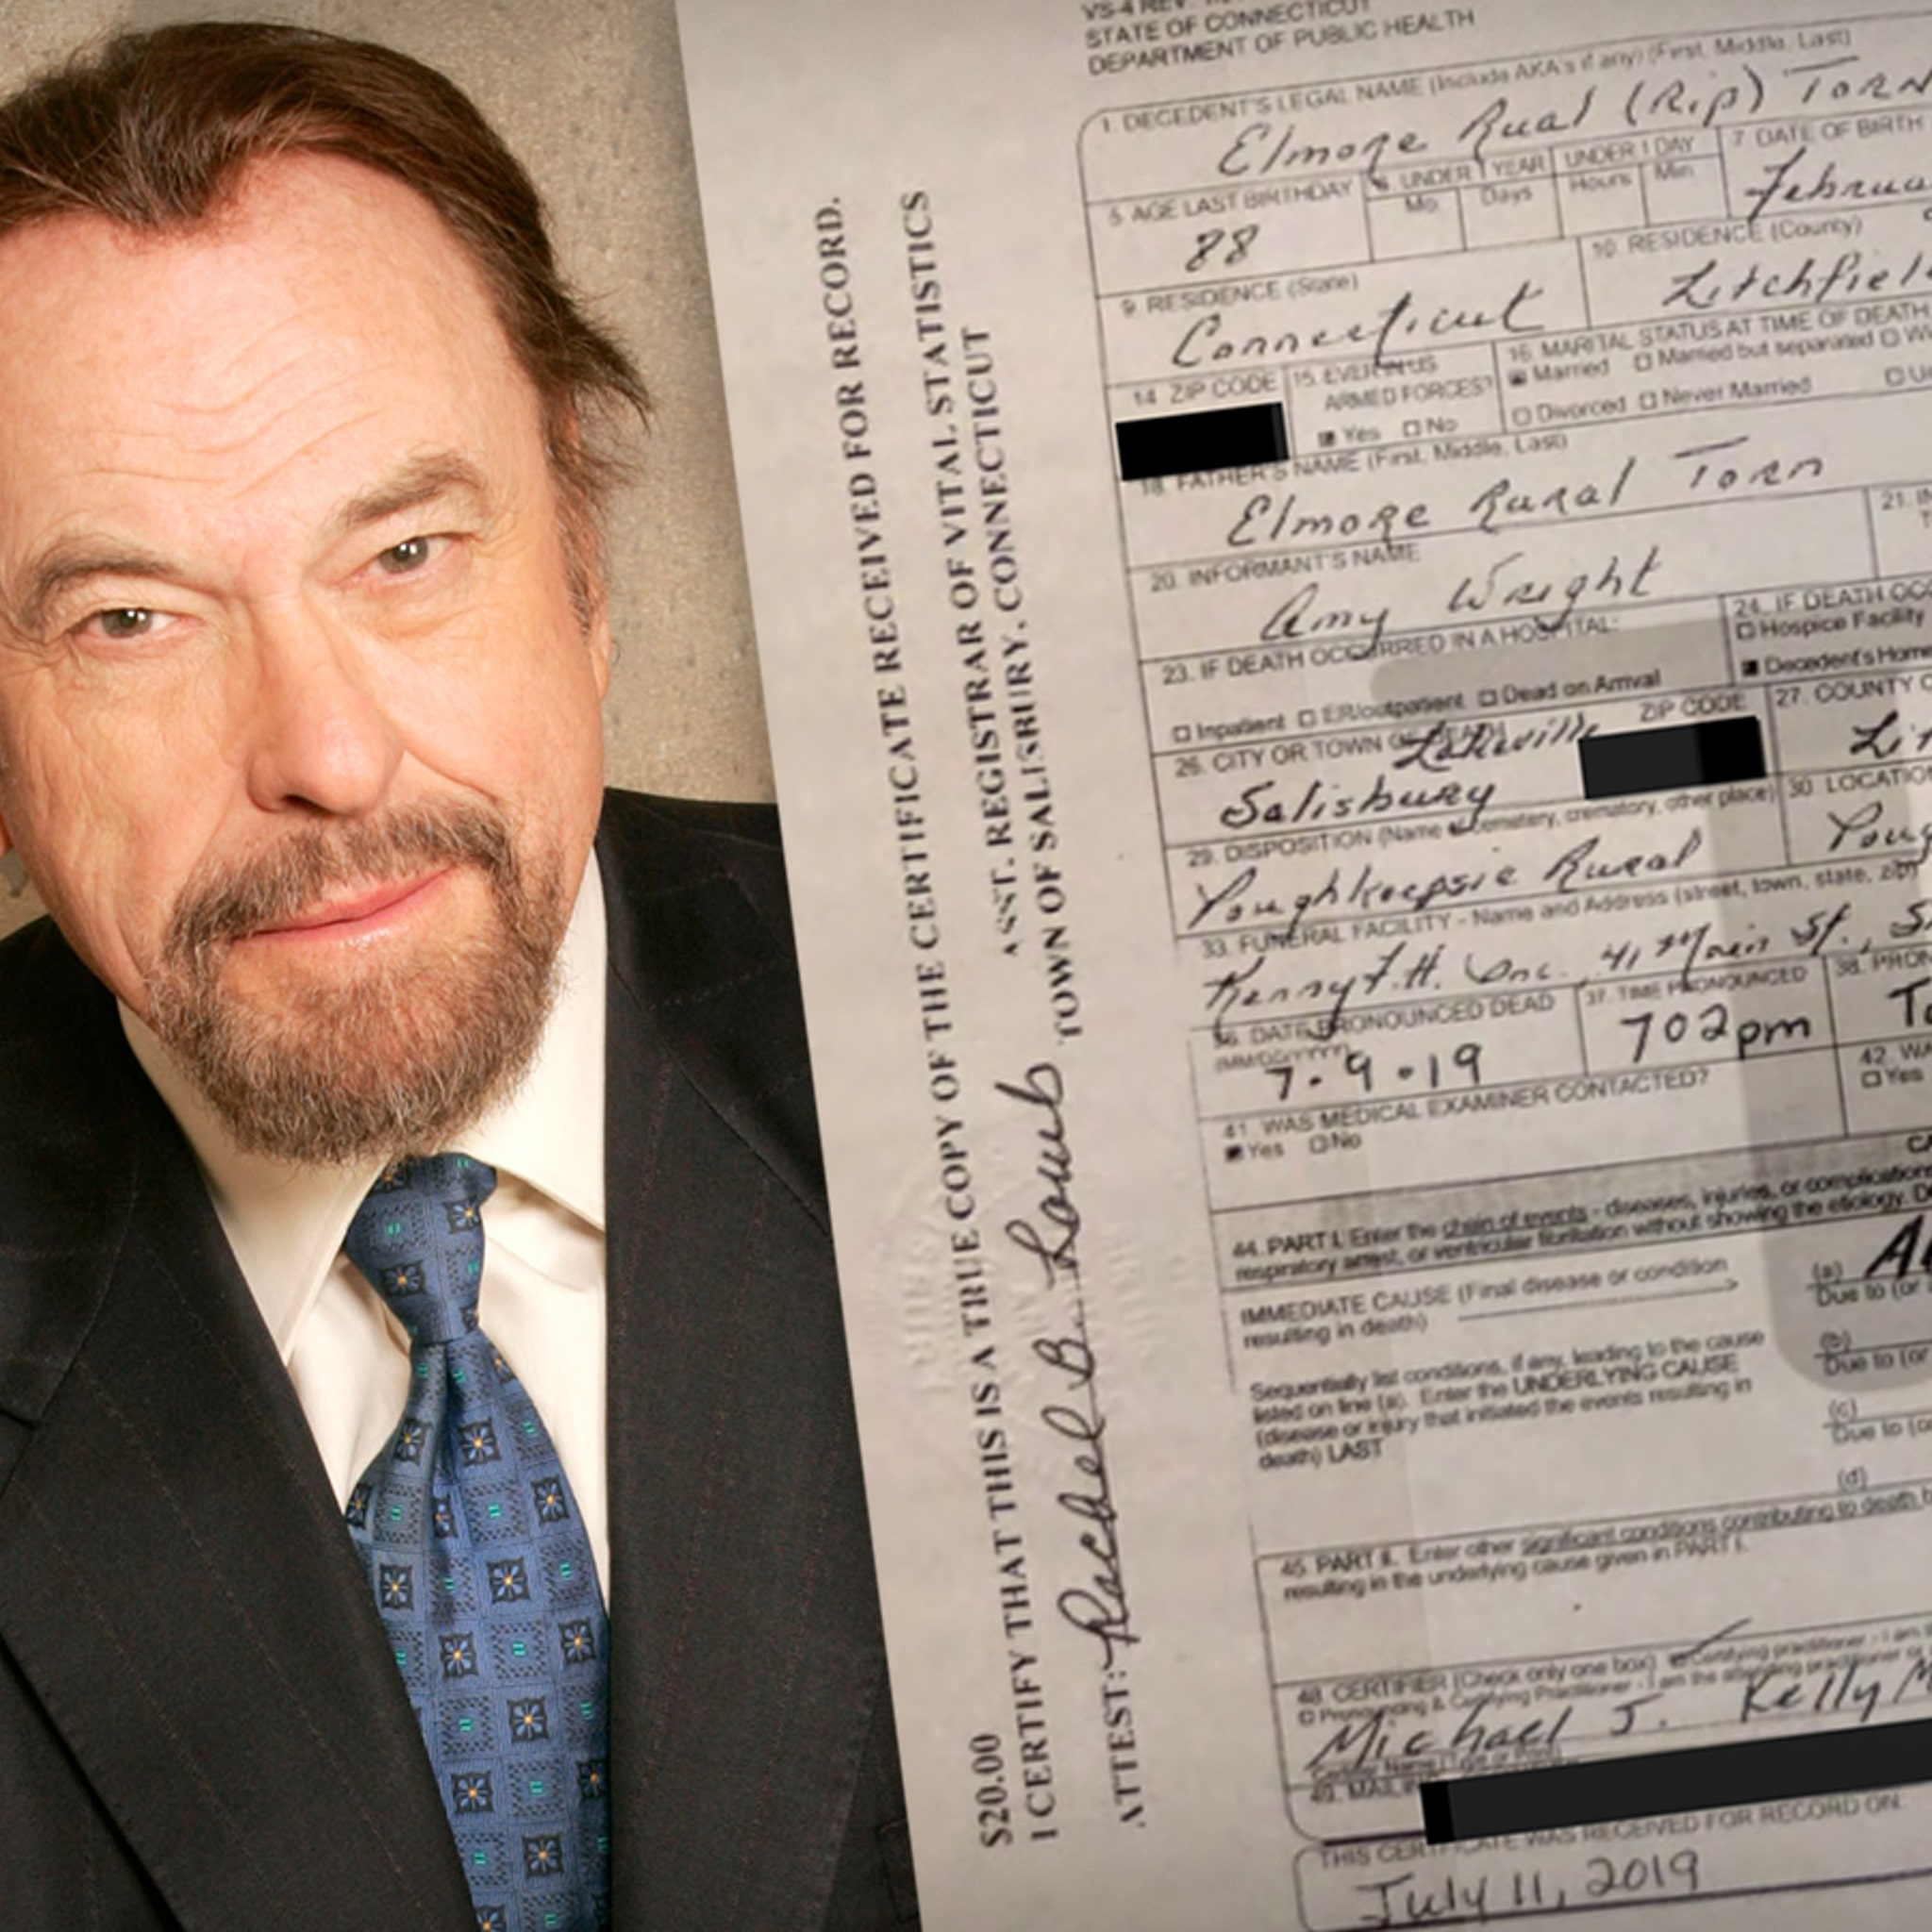 Rip Torn Died of Alzheimer's, According to Death Certificate